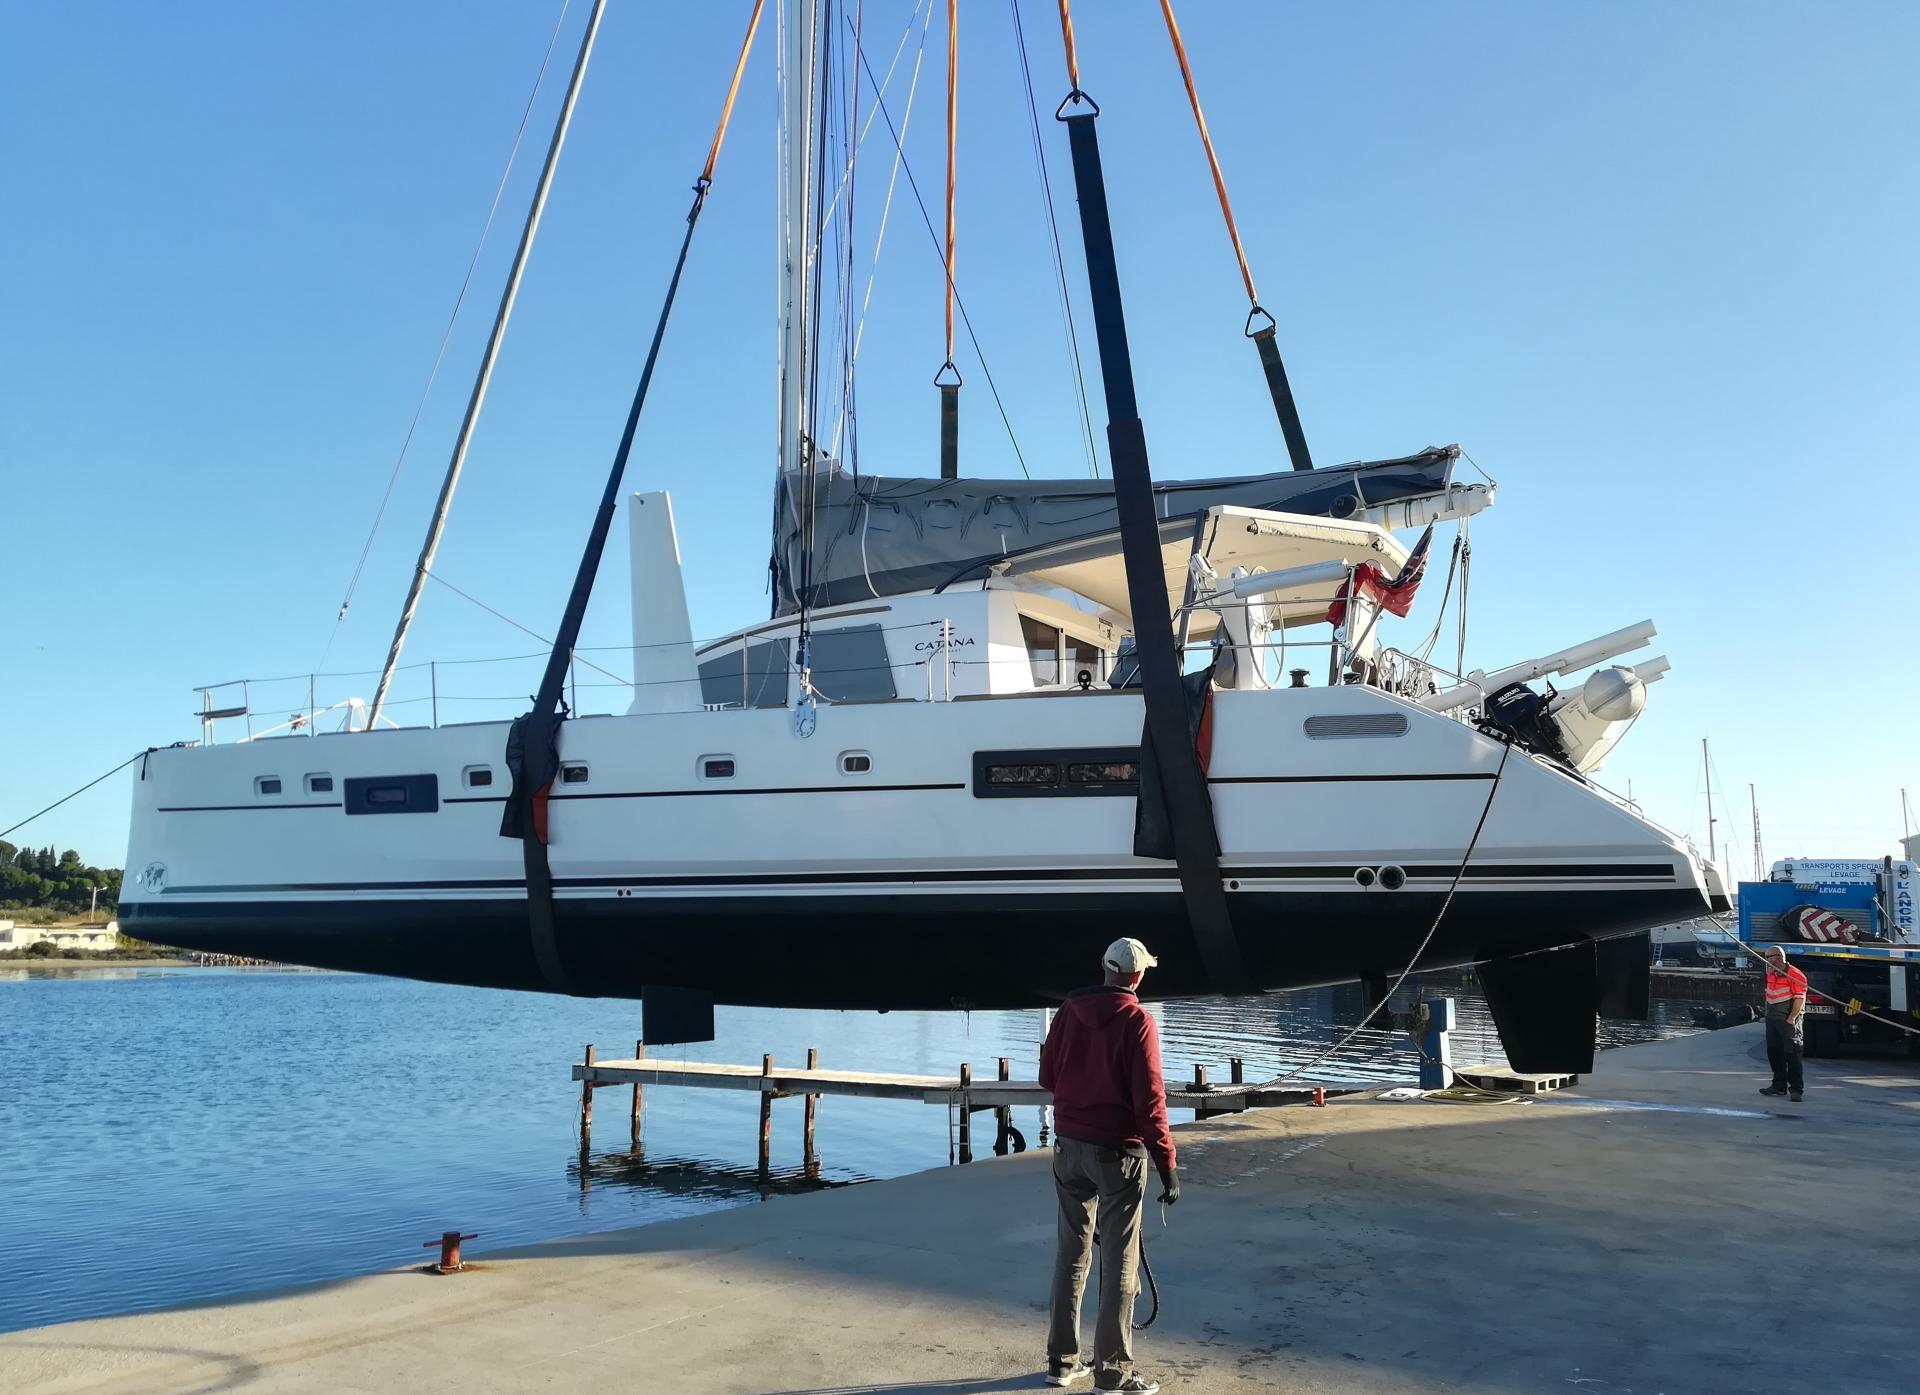 Haul out catana 50